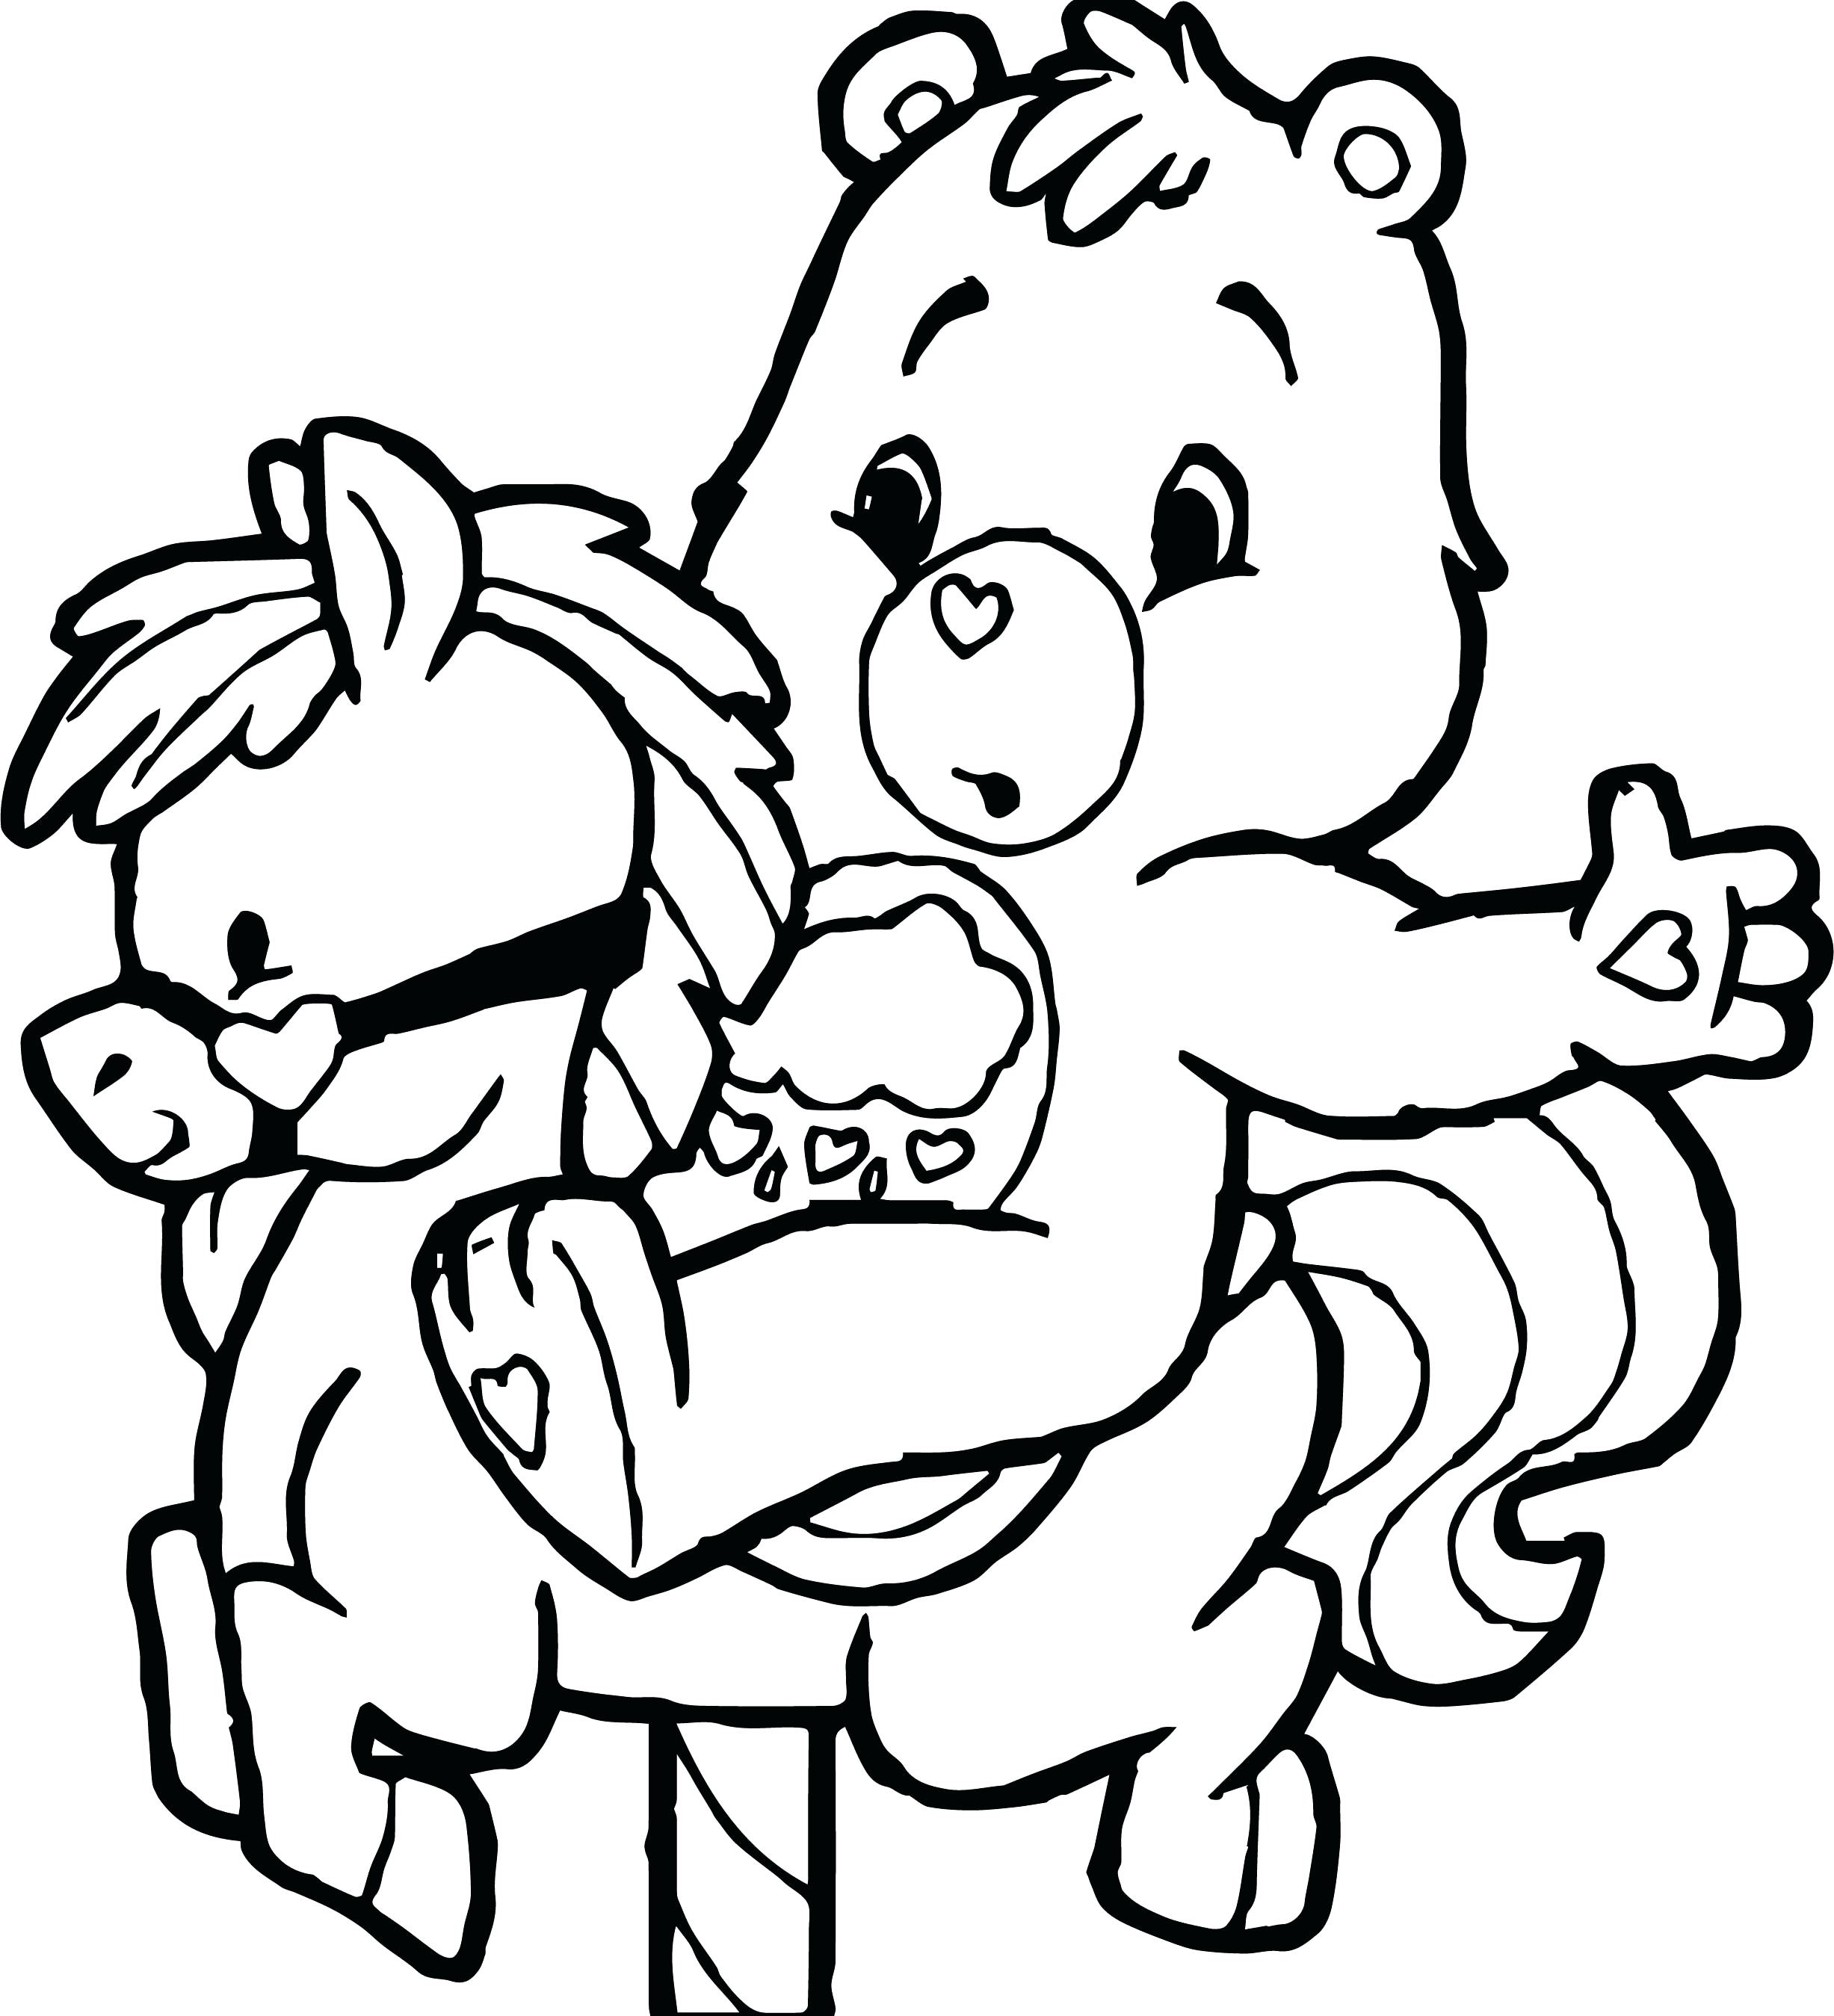 2454x2698 Nfl Bears Coloring Pages New Coloring Page Chicago Bears Coloring